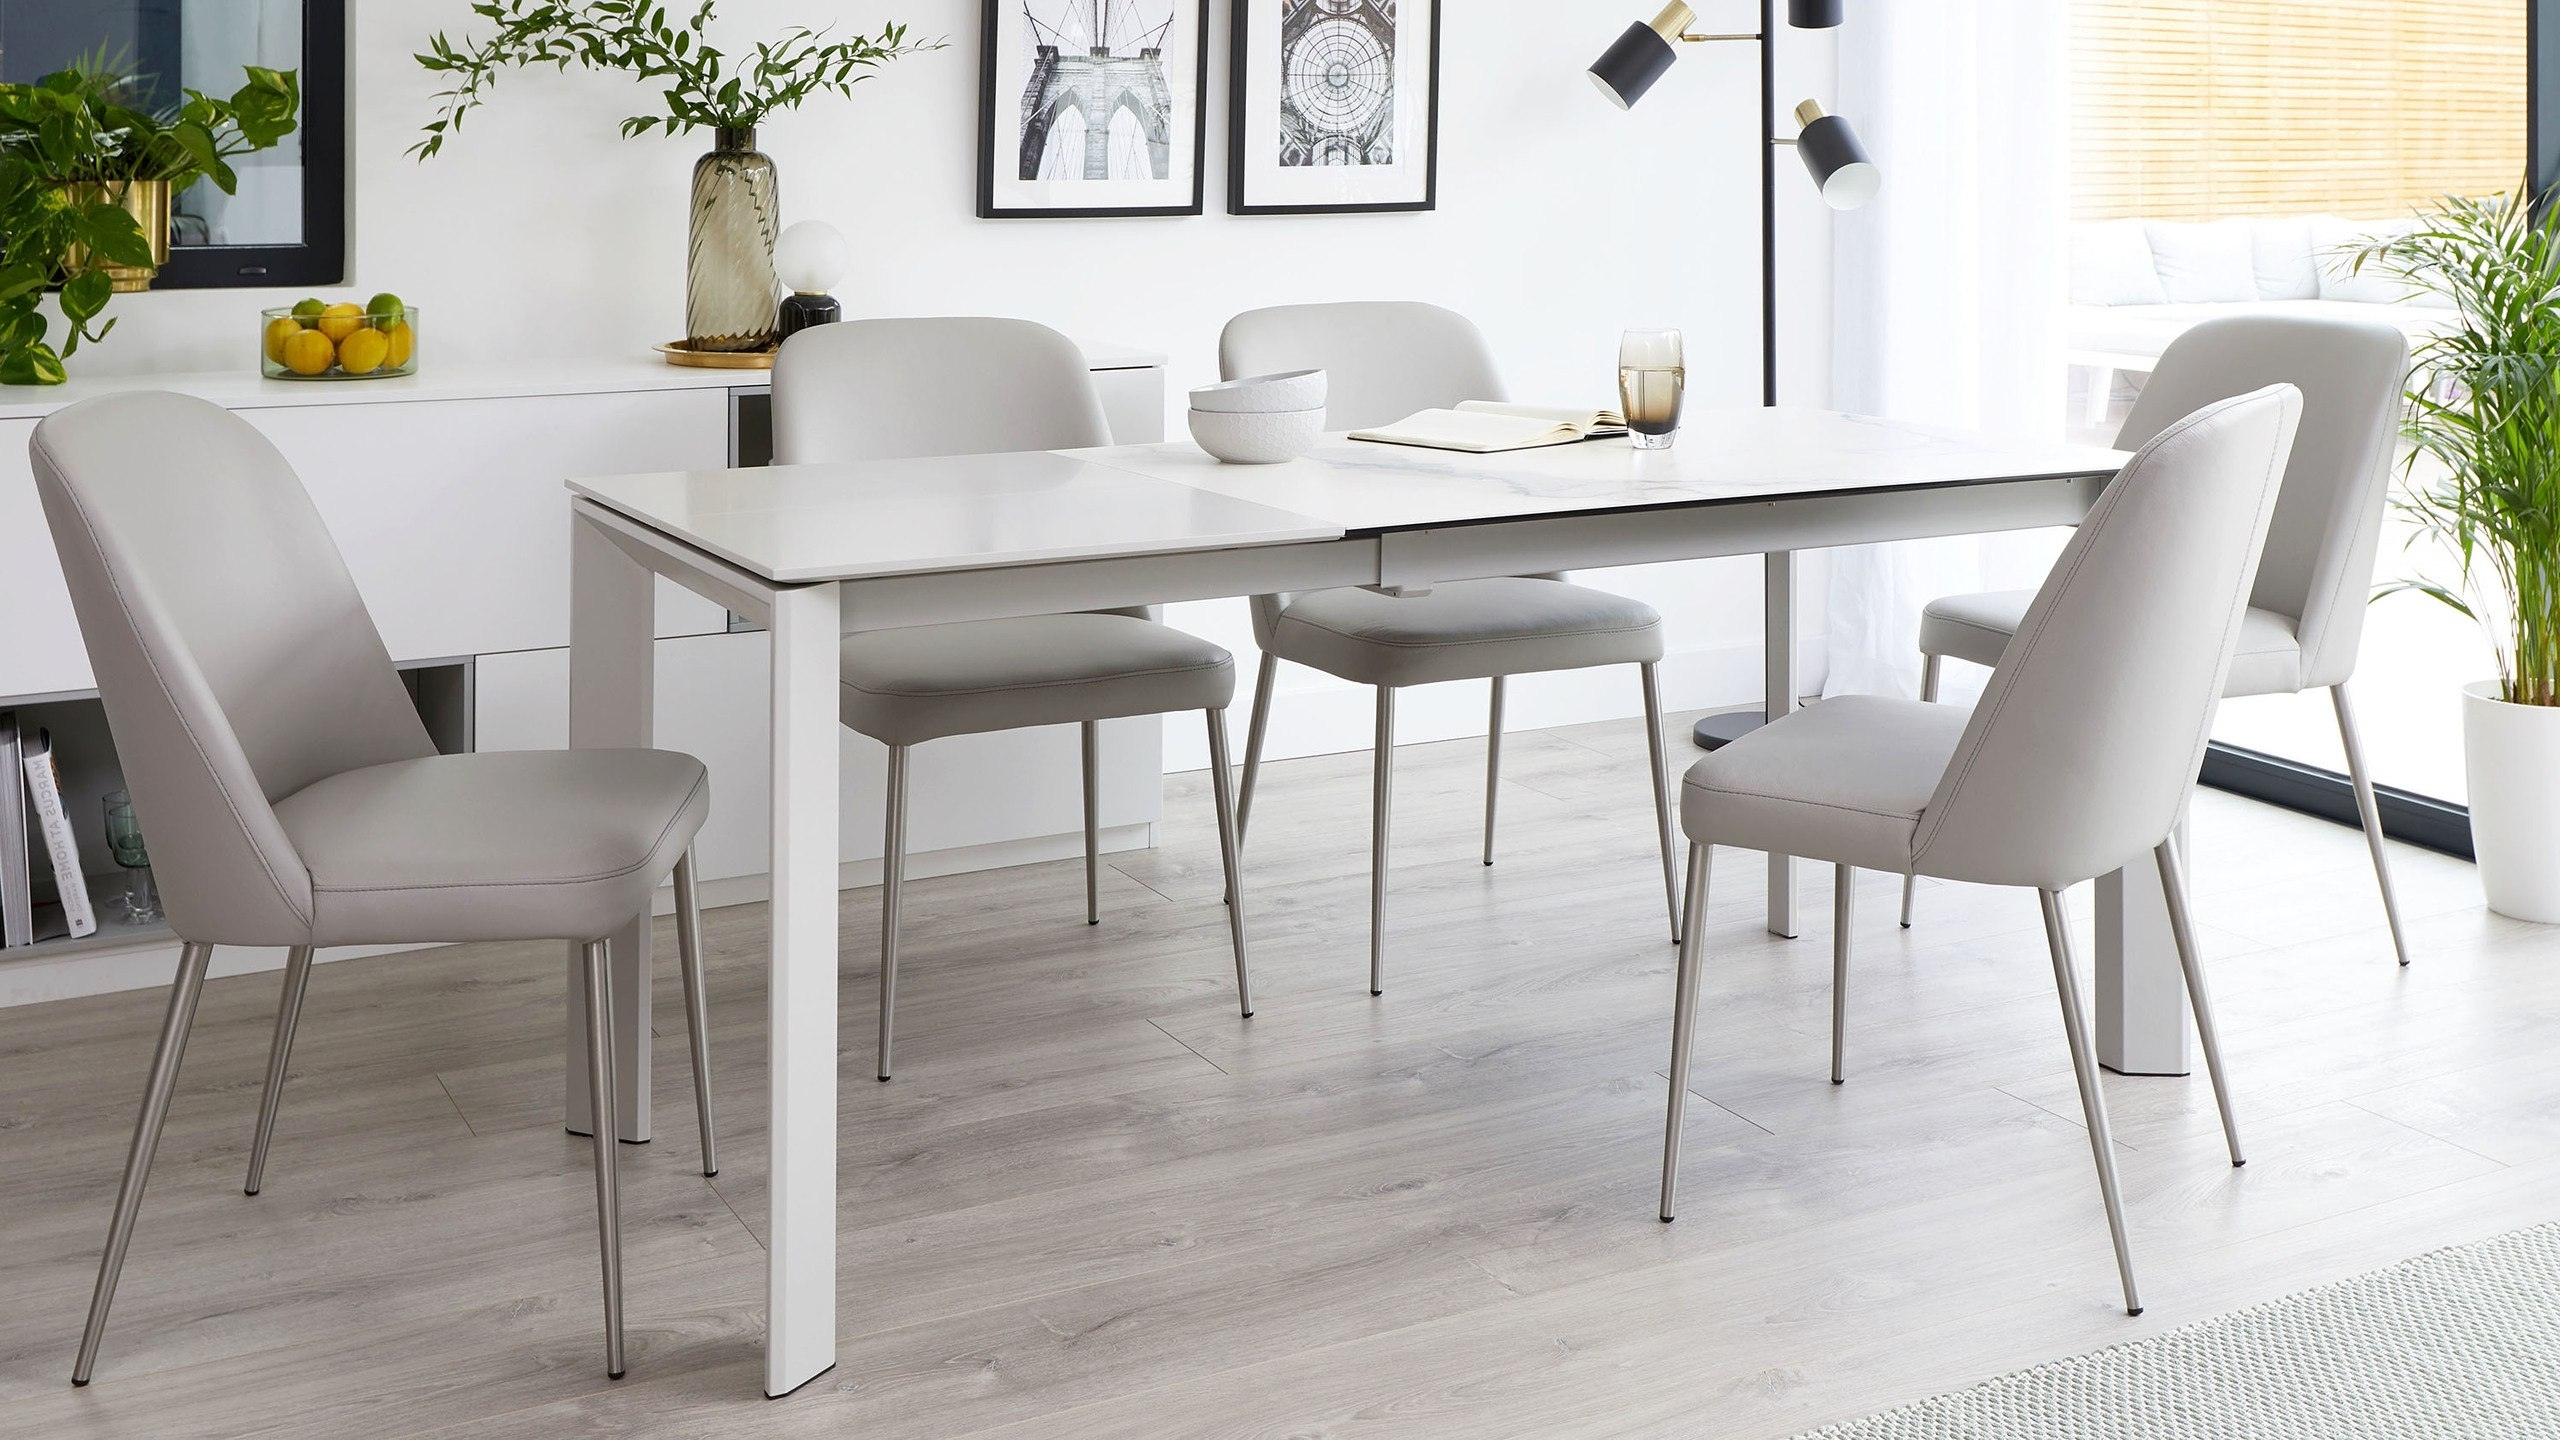 Most Current Extending Marble Dining Tables Pertaining To Louis Extending Dining Table: Product Spotlight – Danetti Lifestyle (View 16 of 25)